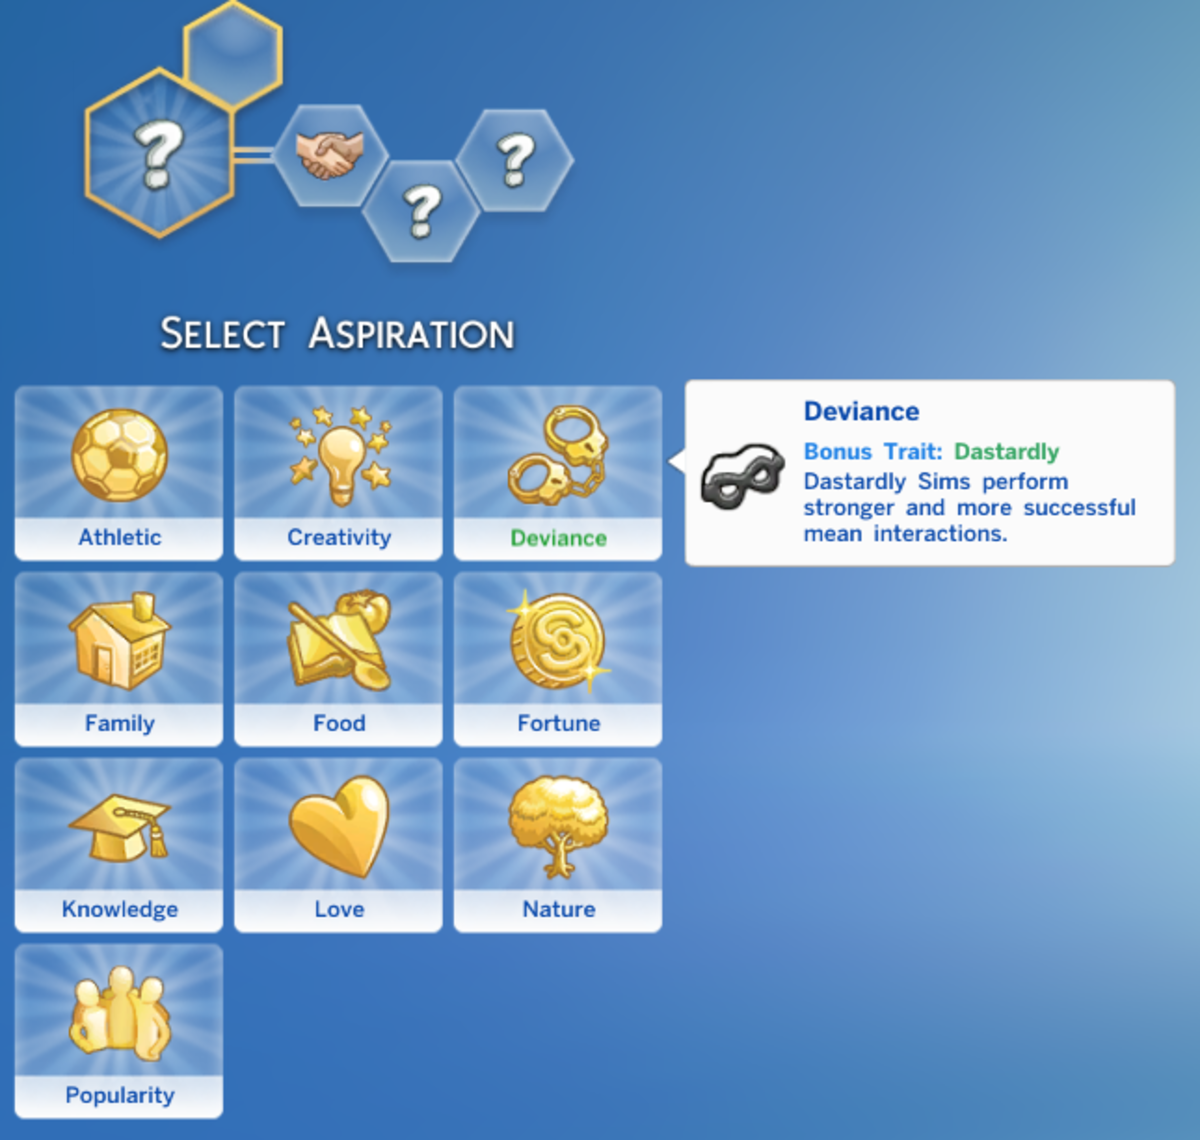 A list of Aspirations in The Sims 4. Aspirations provide Bonus Traits when completed.